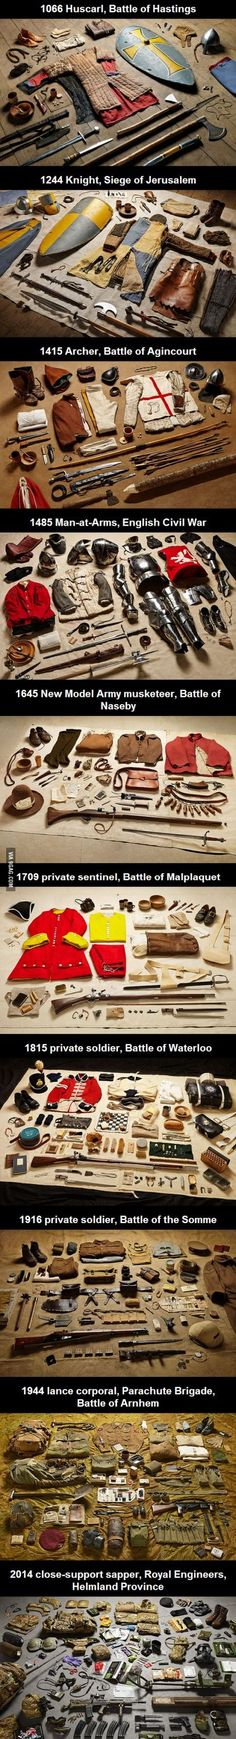 A soldier's gear throughout the ages